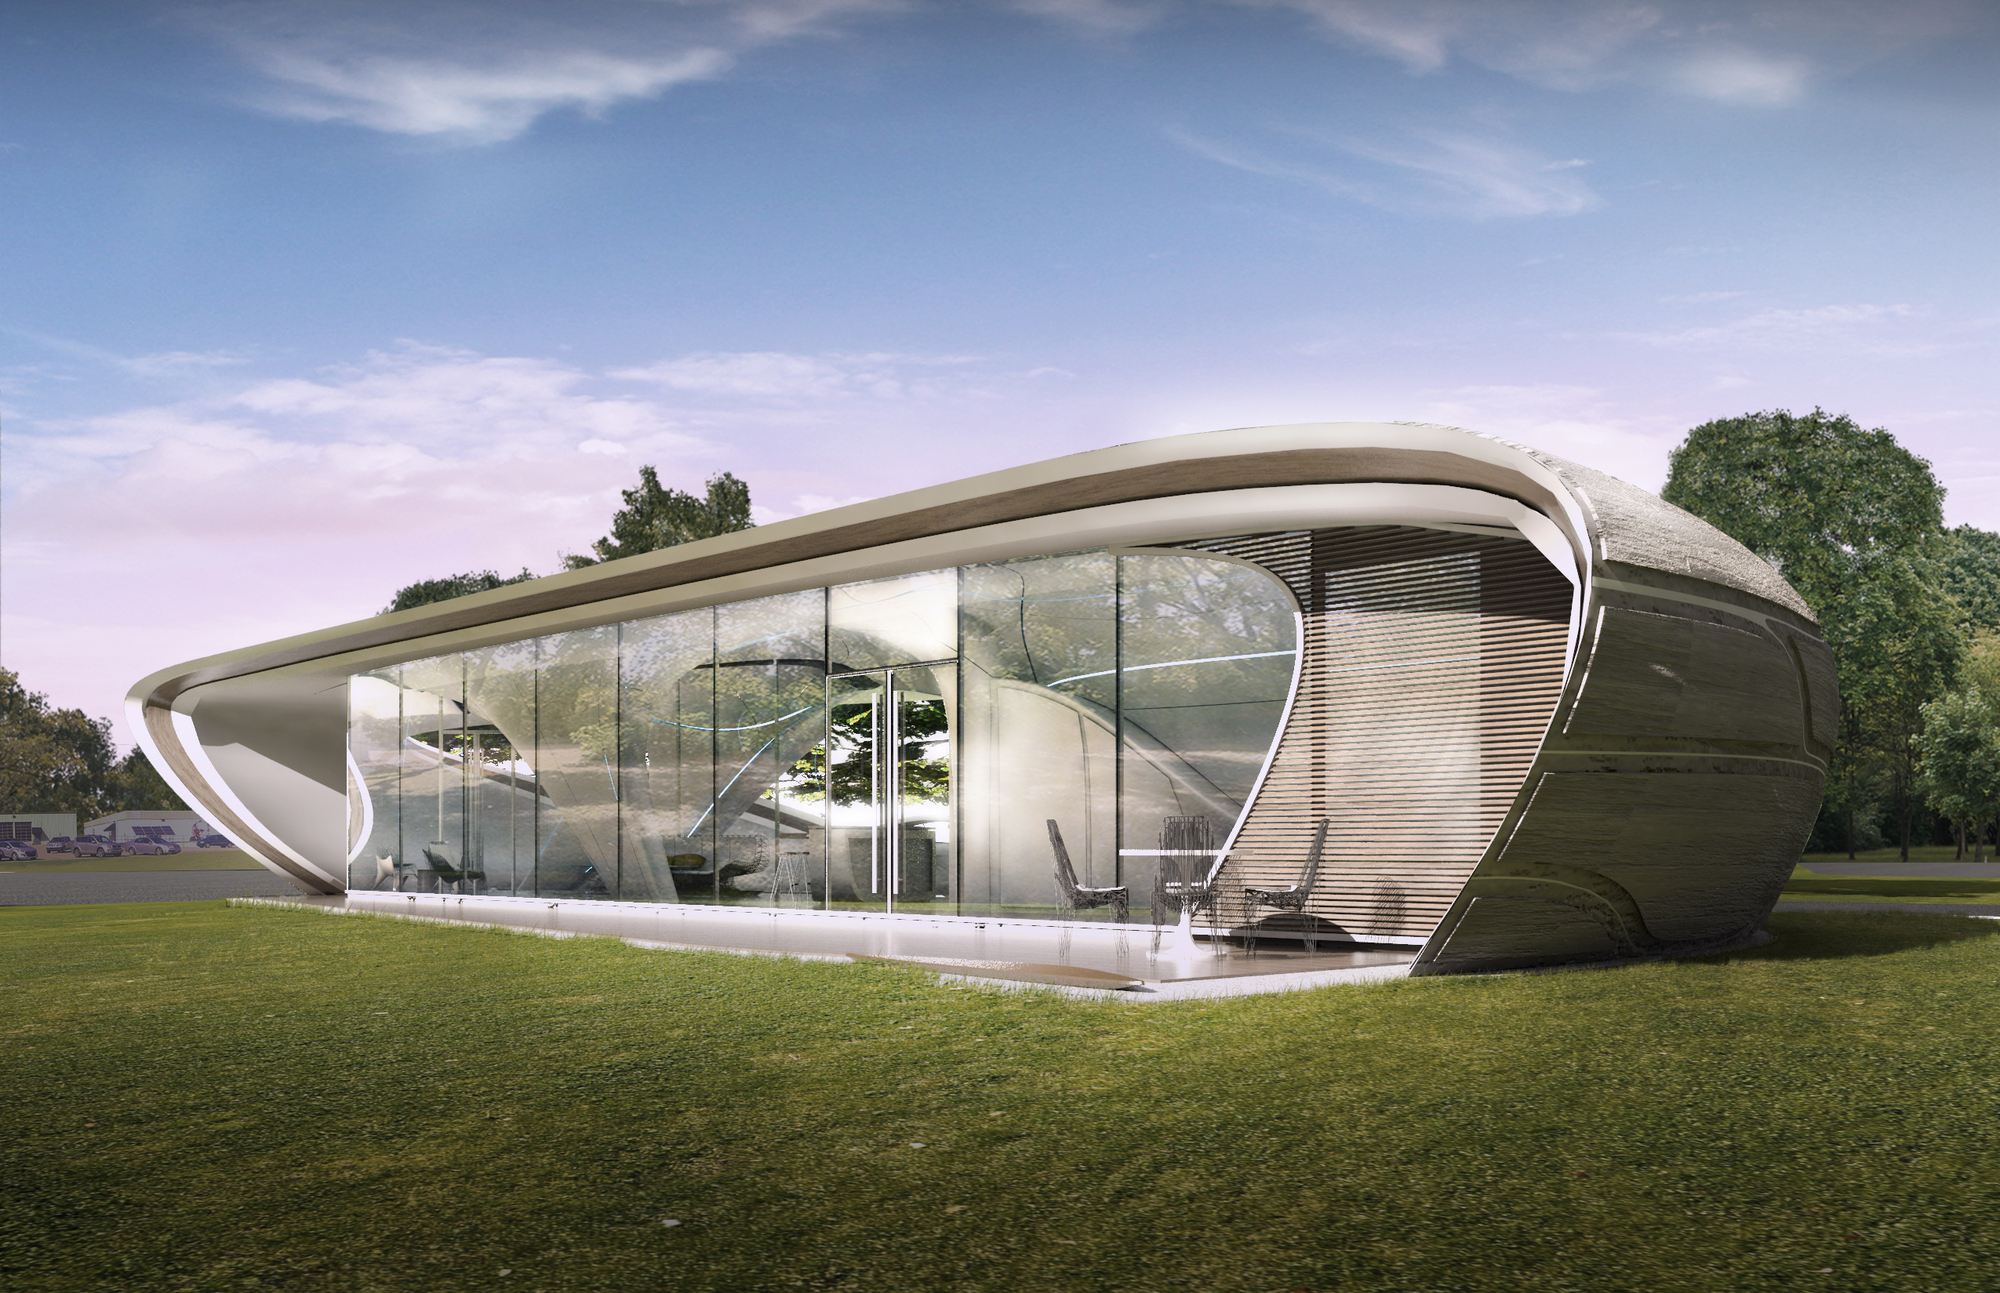 The worlds first freeform 3d printed house enters development phase courtesy of watg urban